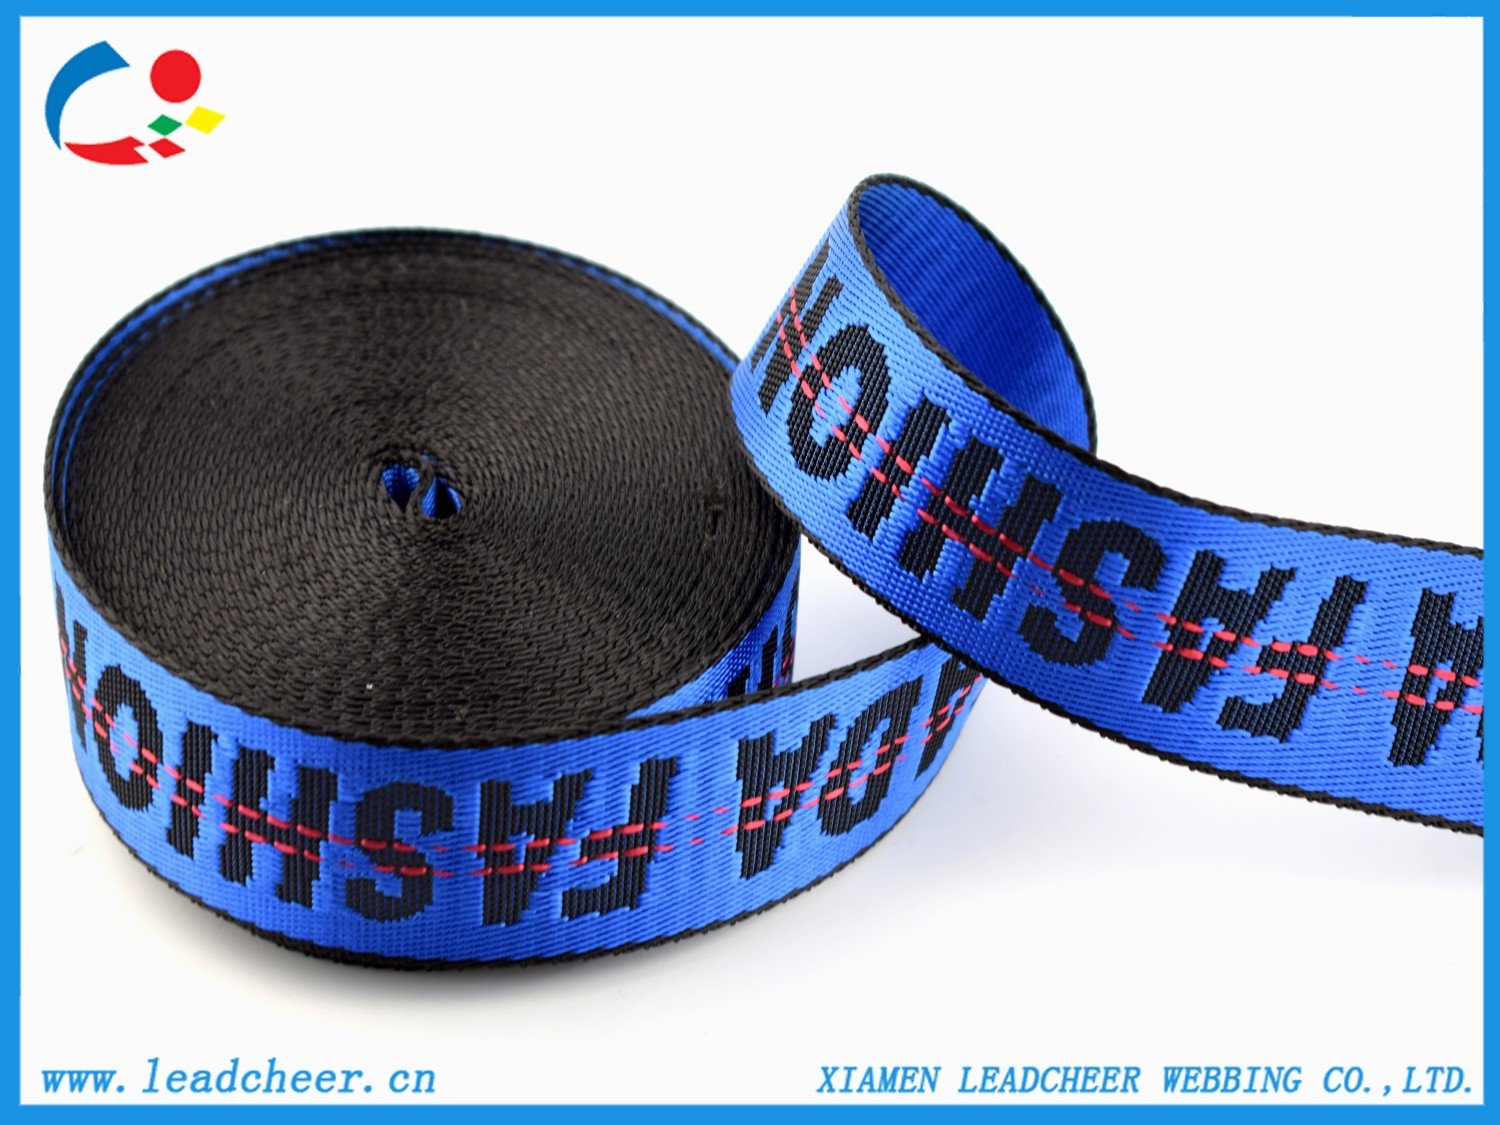 High quality Superior Quality Nylon Jacquard Webbing for Luxurious Bag Quotes,China Superior Quality Nylon Jacquard Webbing for Luxurious Bag Factory,Superior Quality Nylon Jacquard Webbing for Luxurious Bag Purchasing